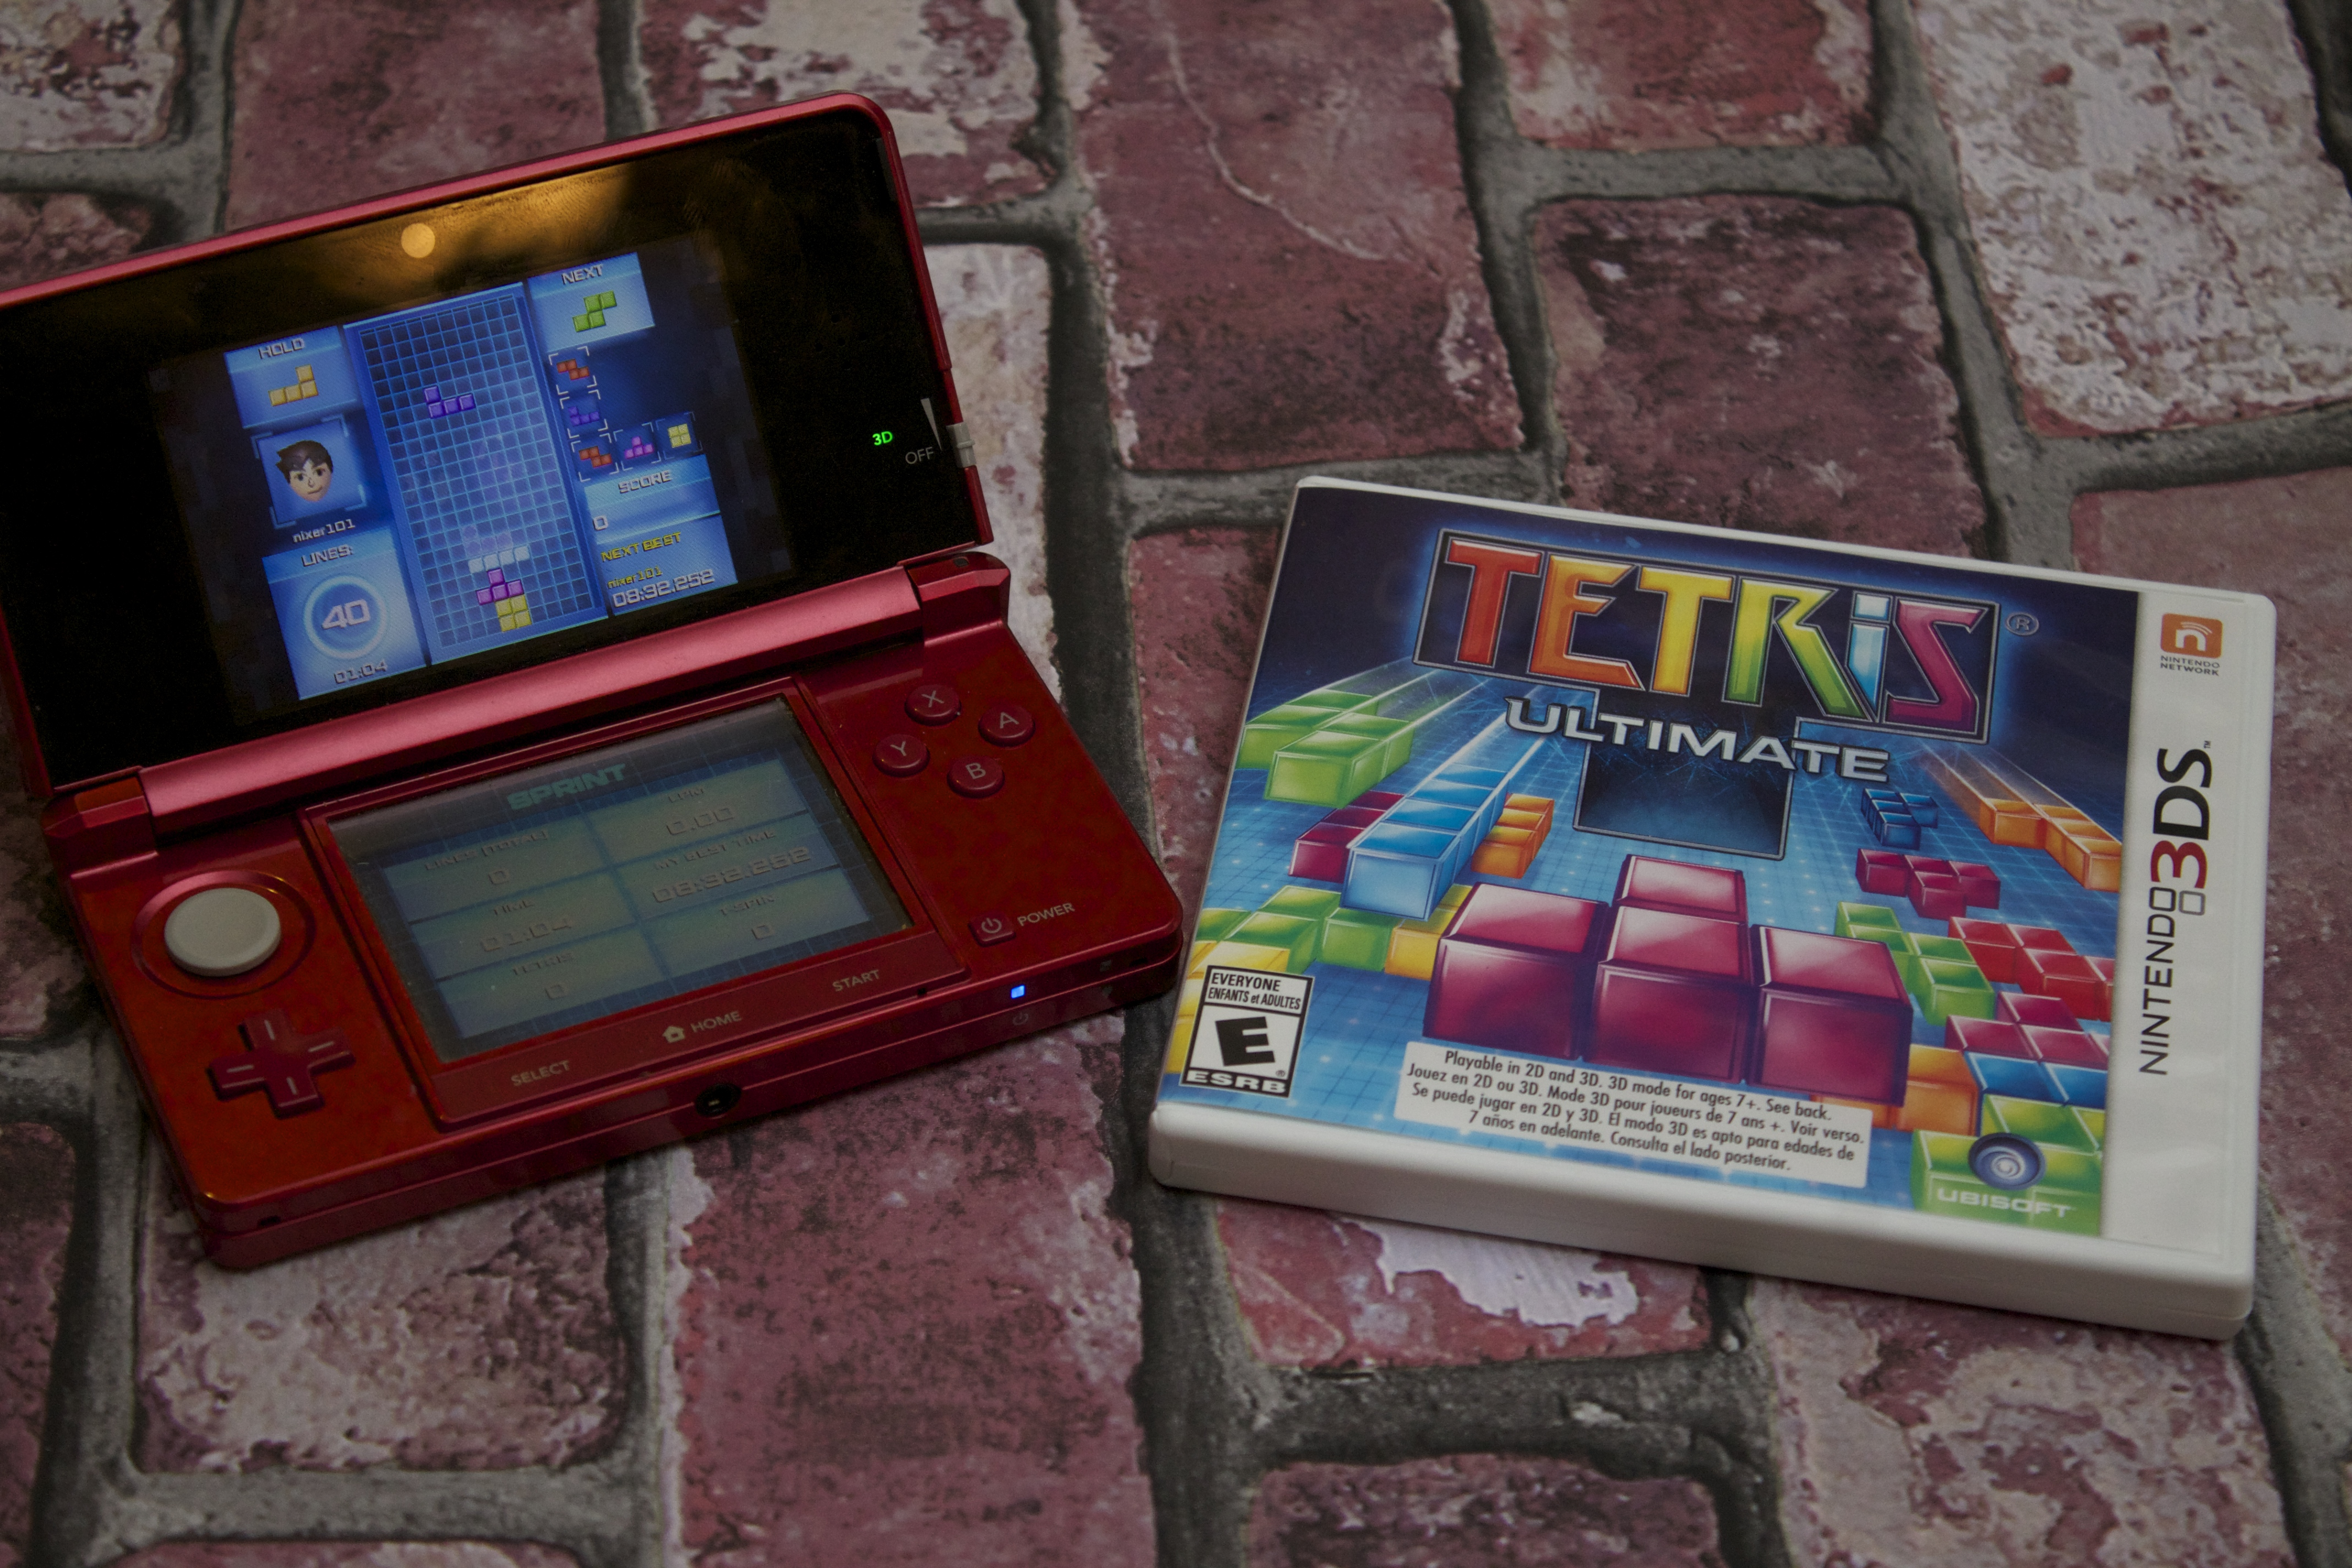 tetris ultimate for 3ds